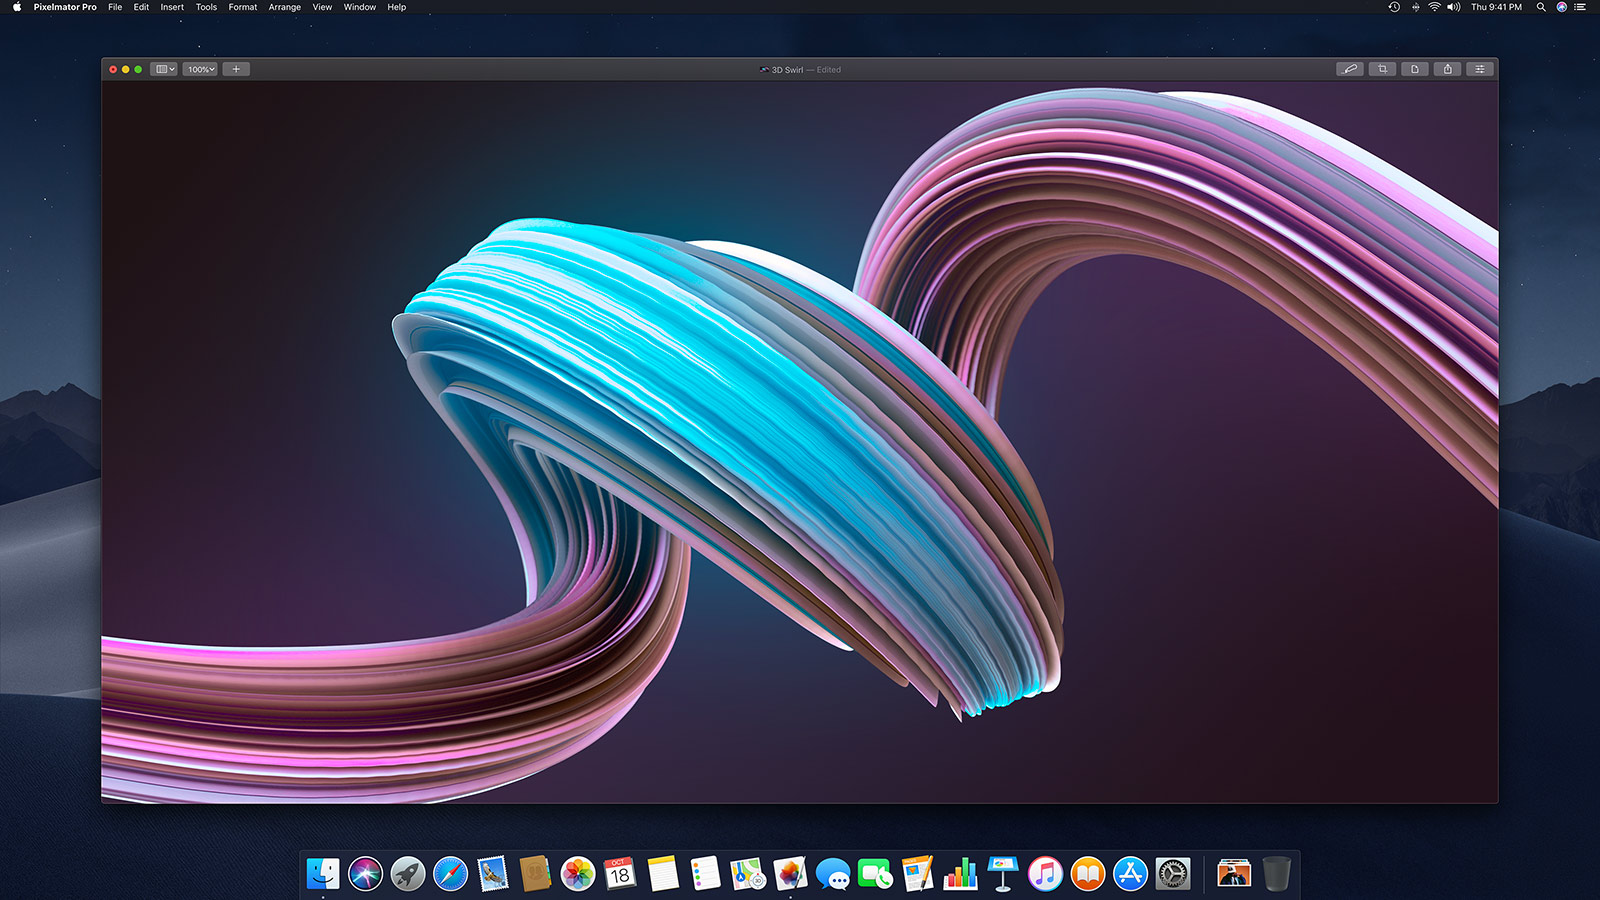 Pixelmator Pro 1.6.3 Crack Mac Torrent Latest Free Download